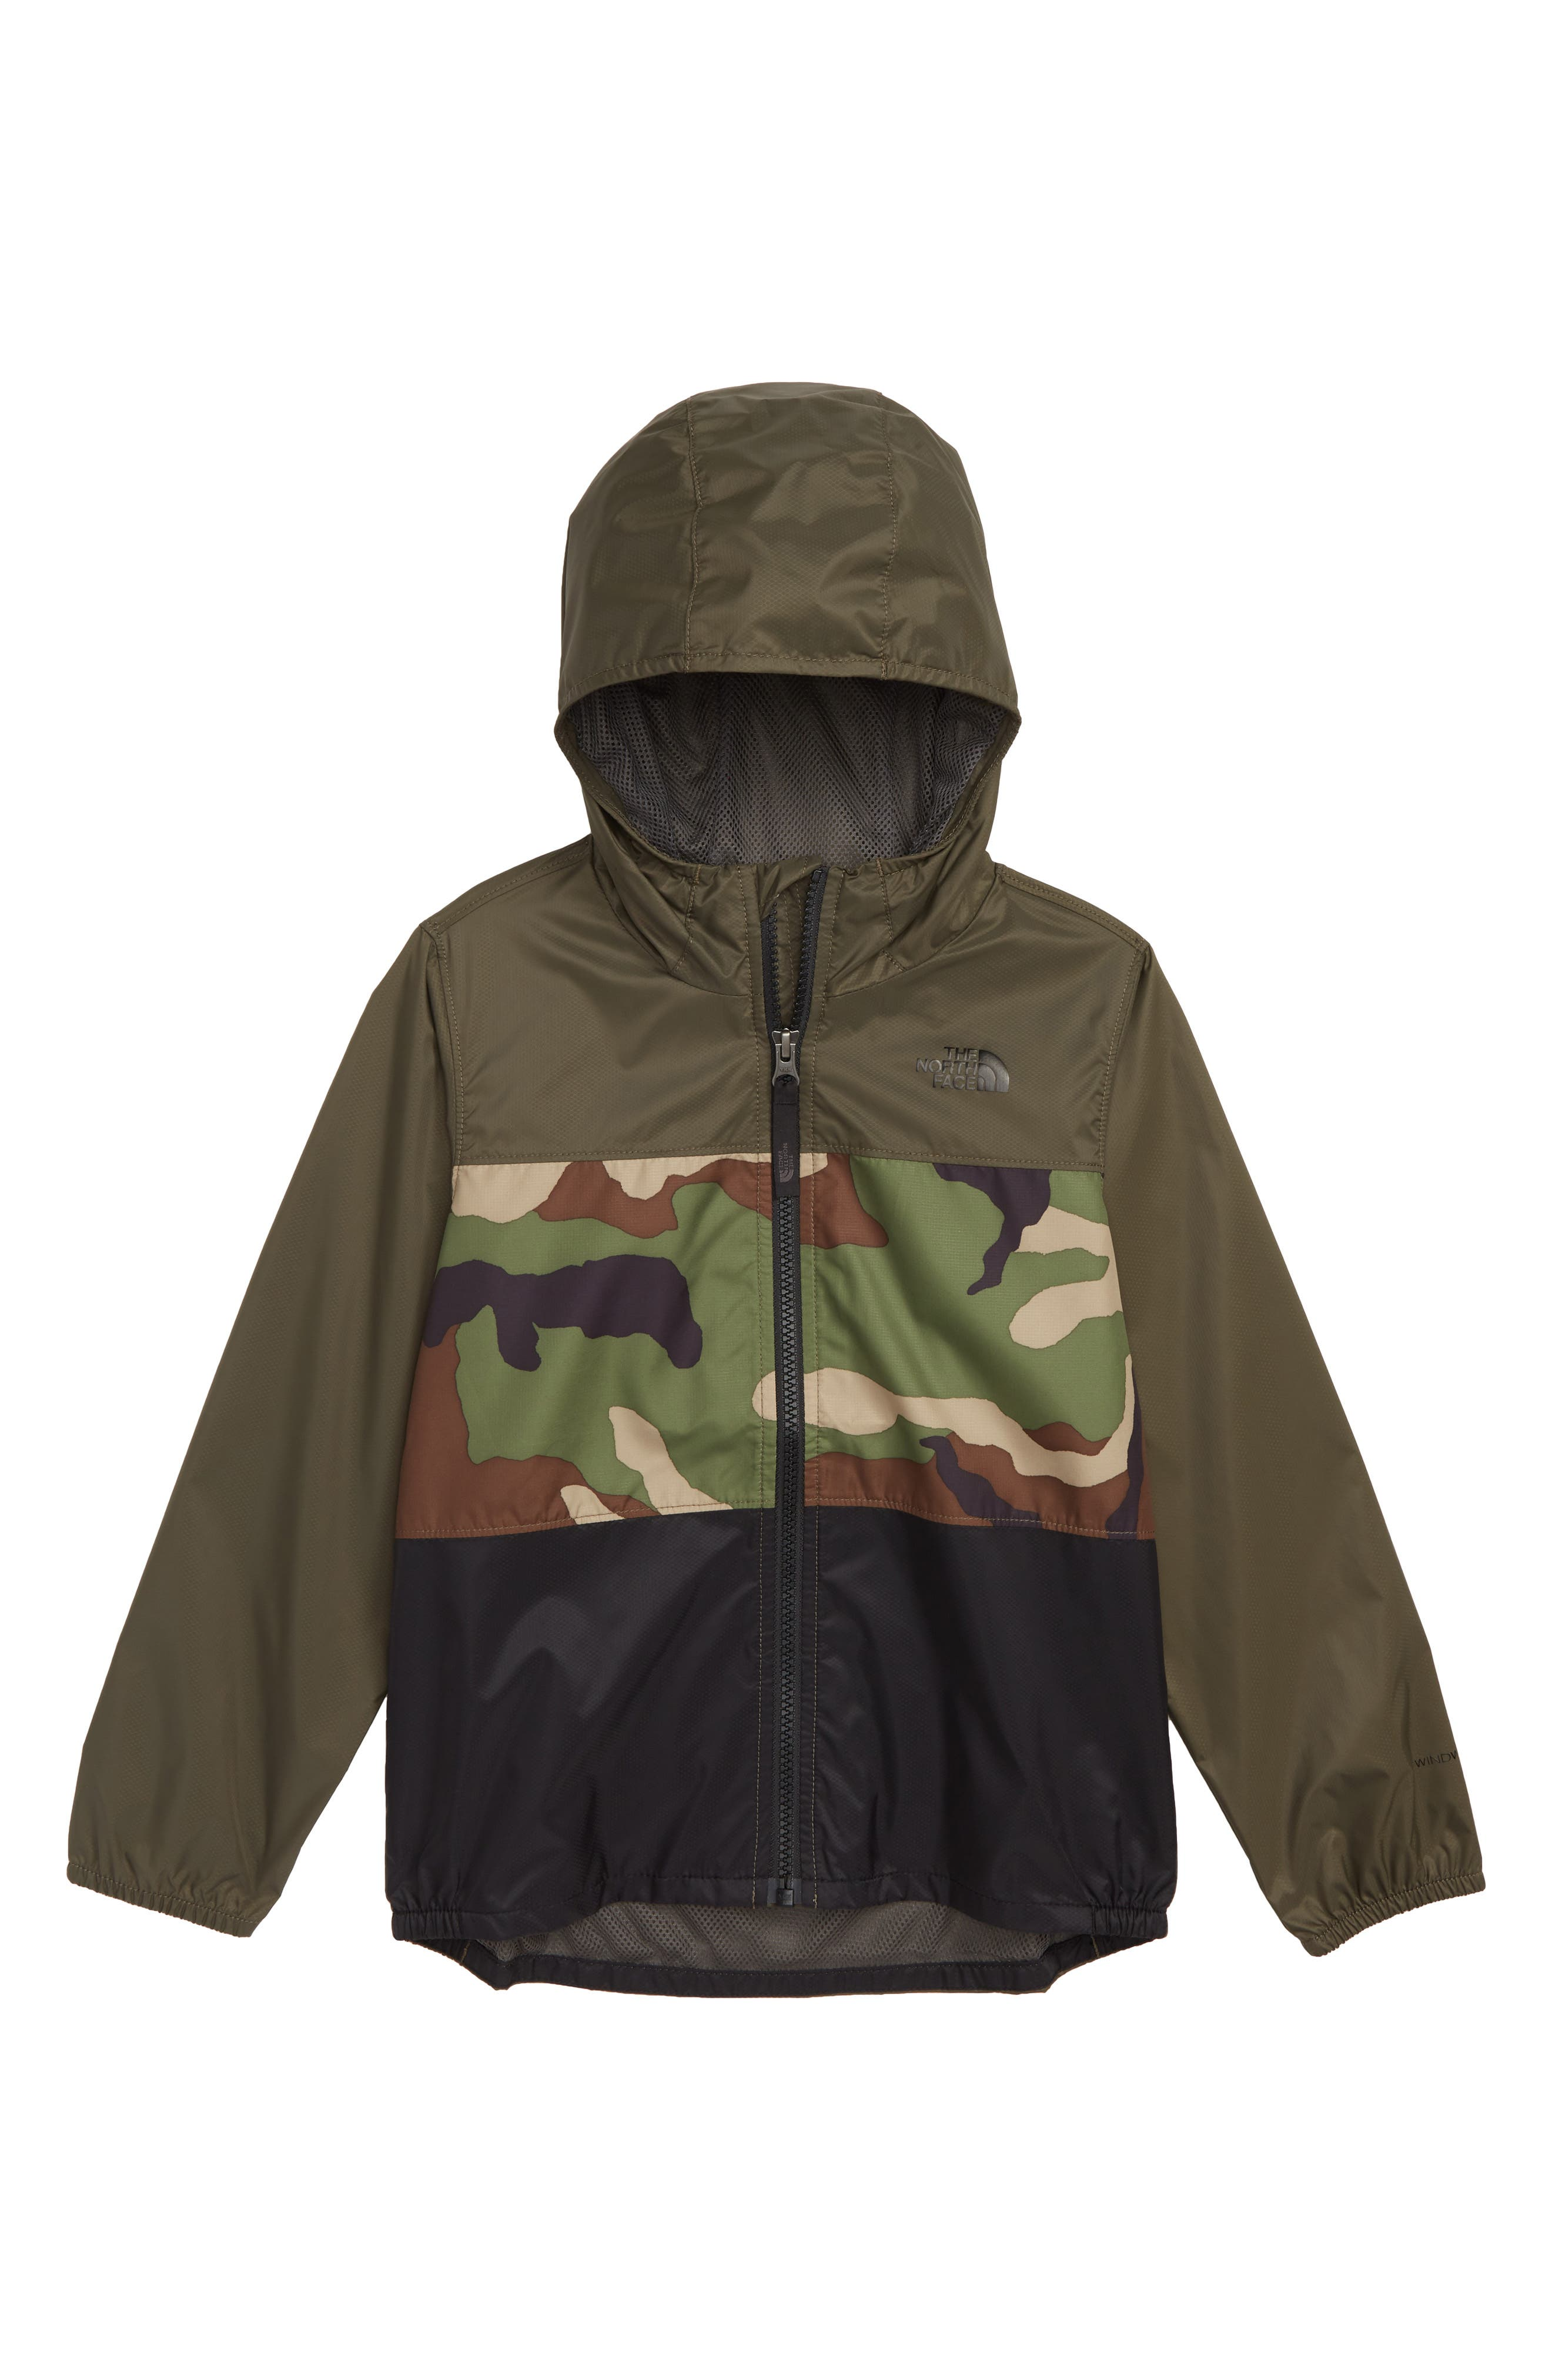 Flurry Hooded Windbreaker Jacket,                             Main thumbnail 1, color,                             TERRARIUM GREEN WOODLAND CAMO